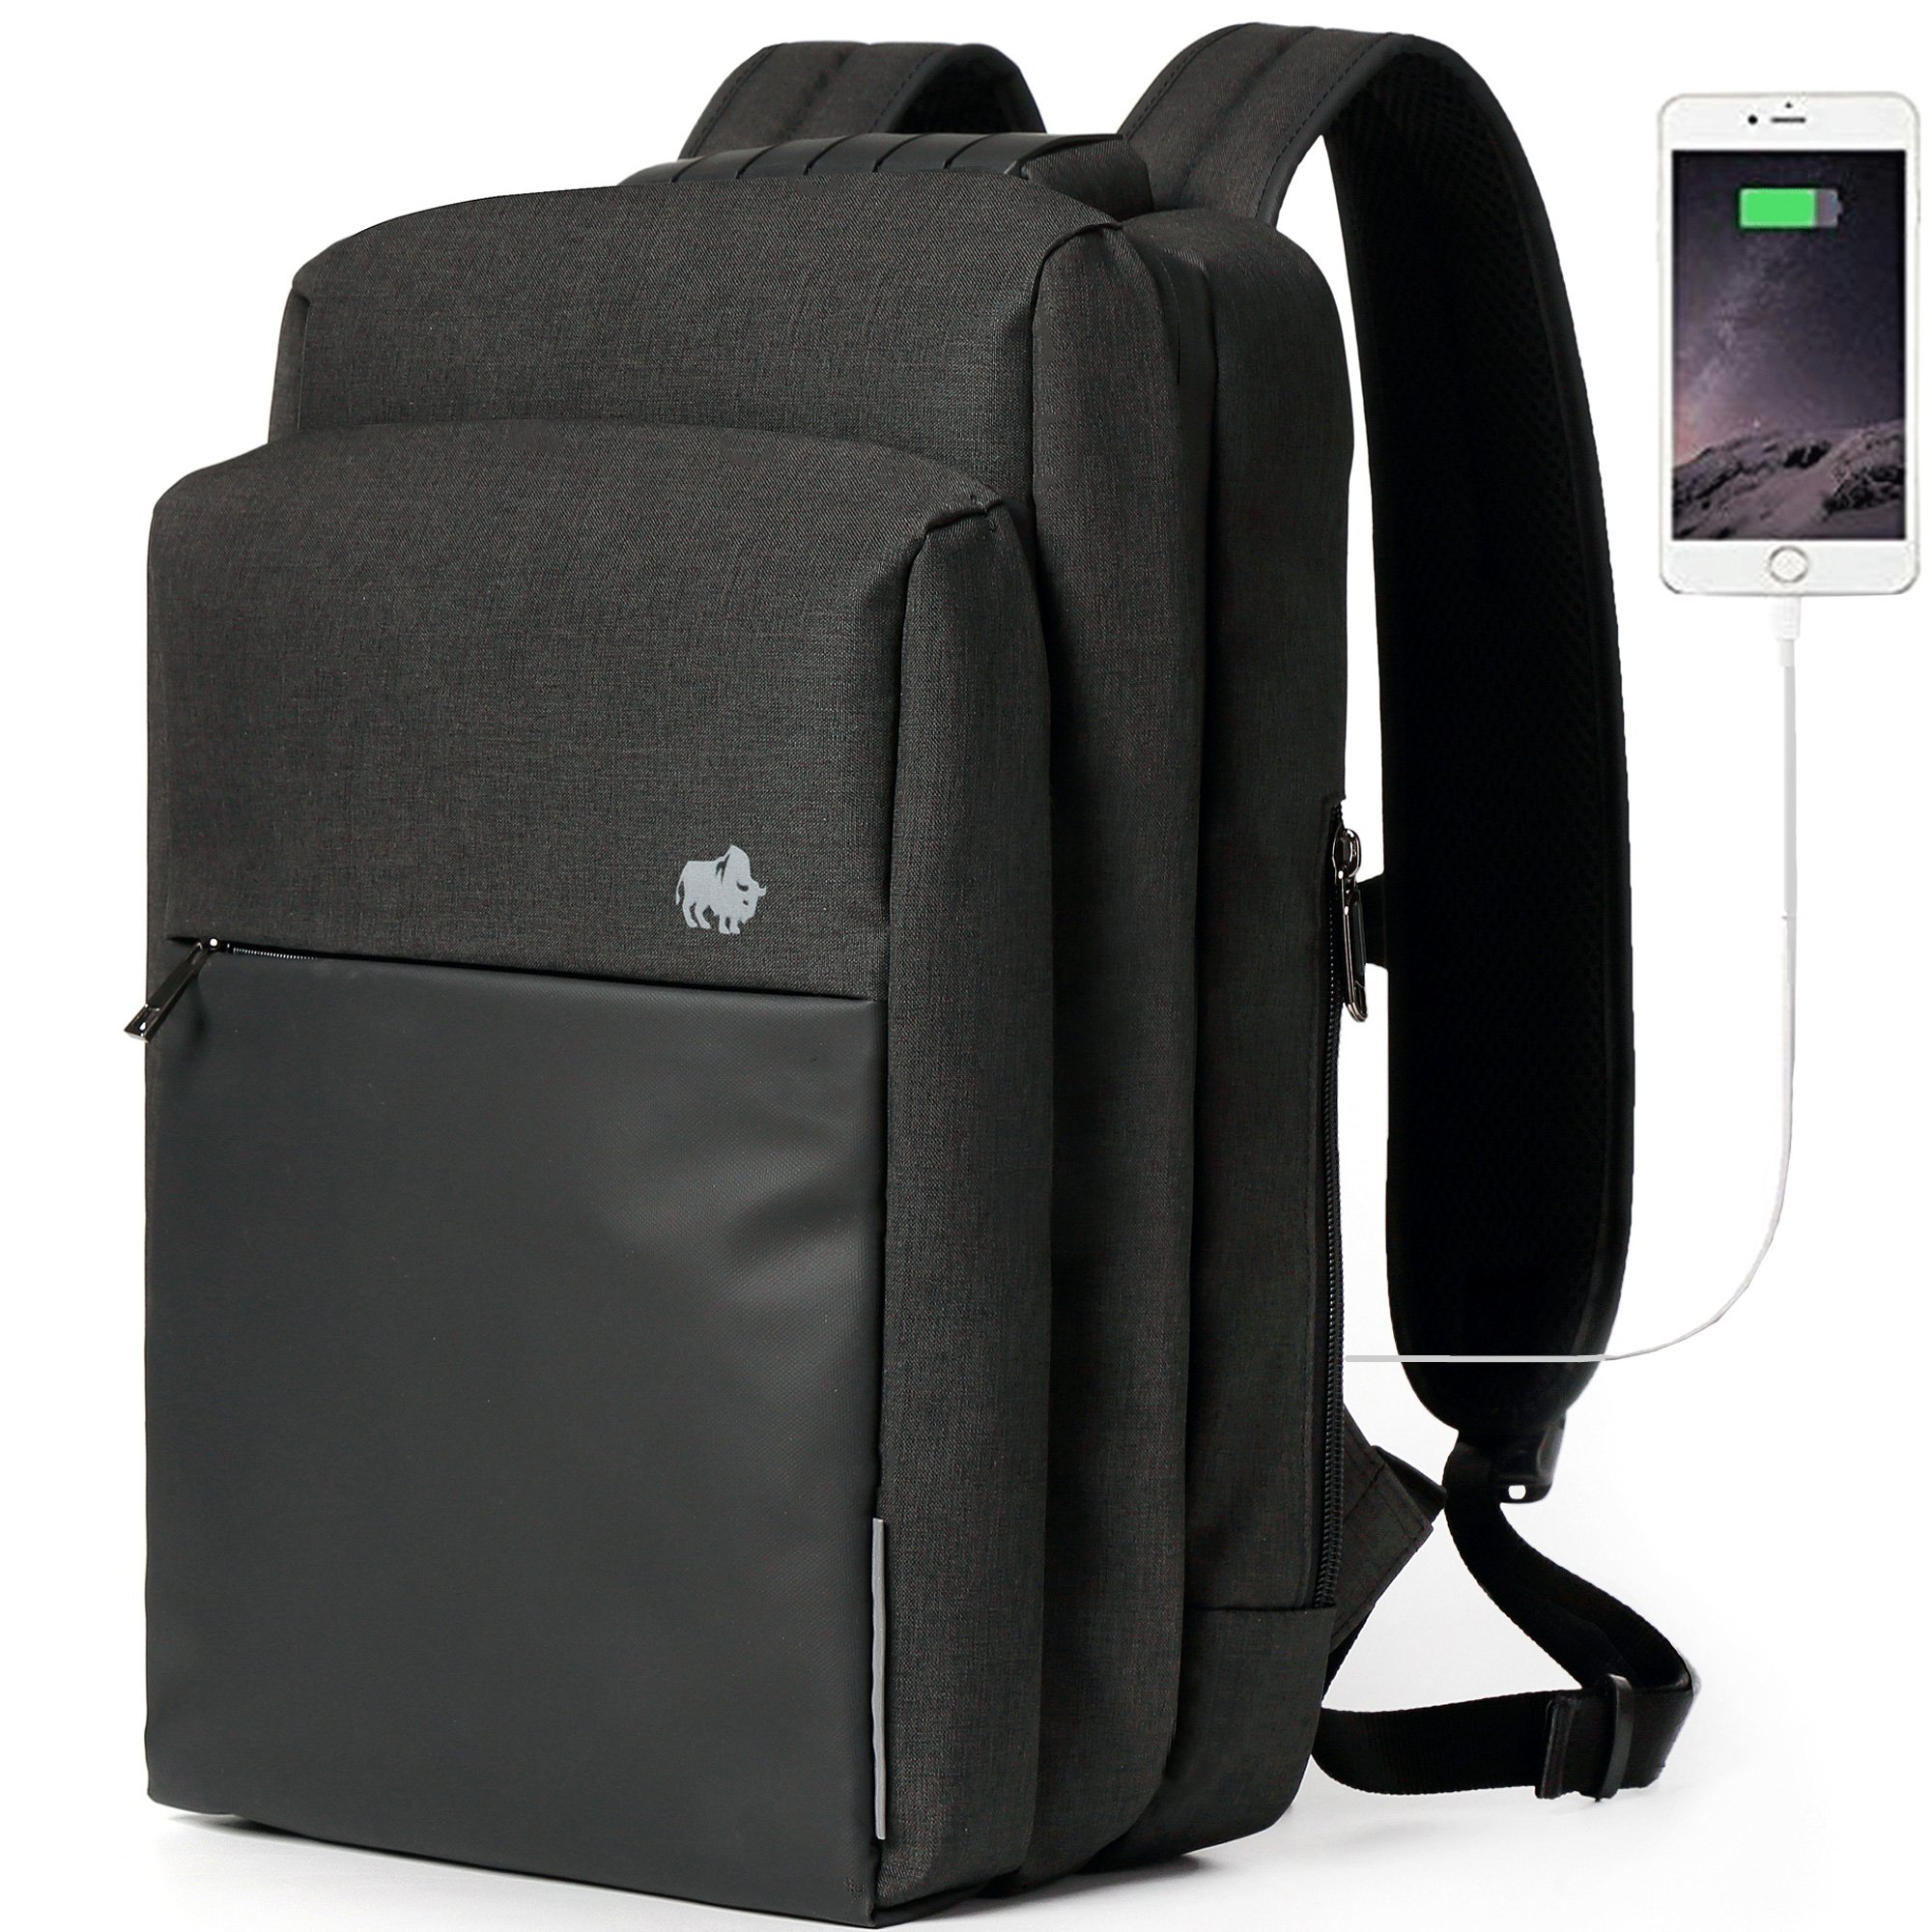 BISON DENIM 15.6 Inch Laptop Backpack Water Resistant Travel Backpack Mens Computer Bag with USB Charging Port